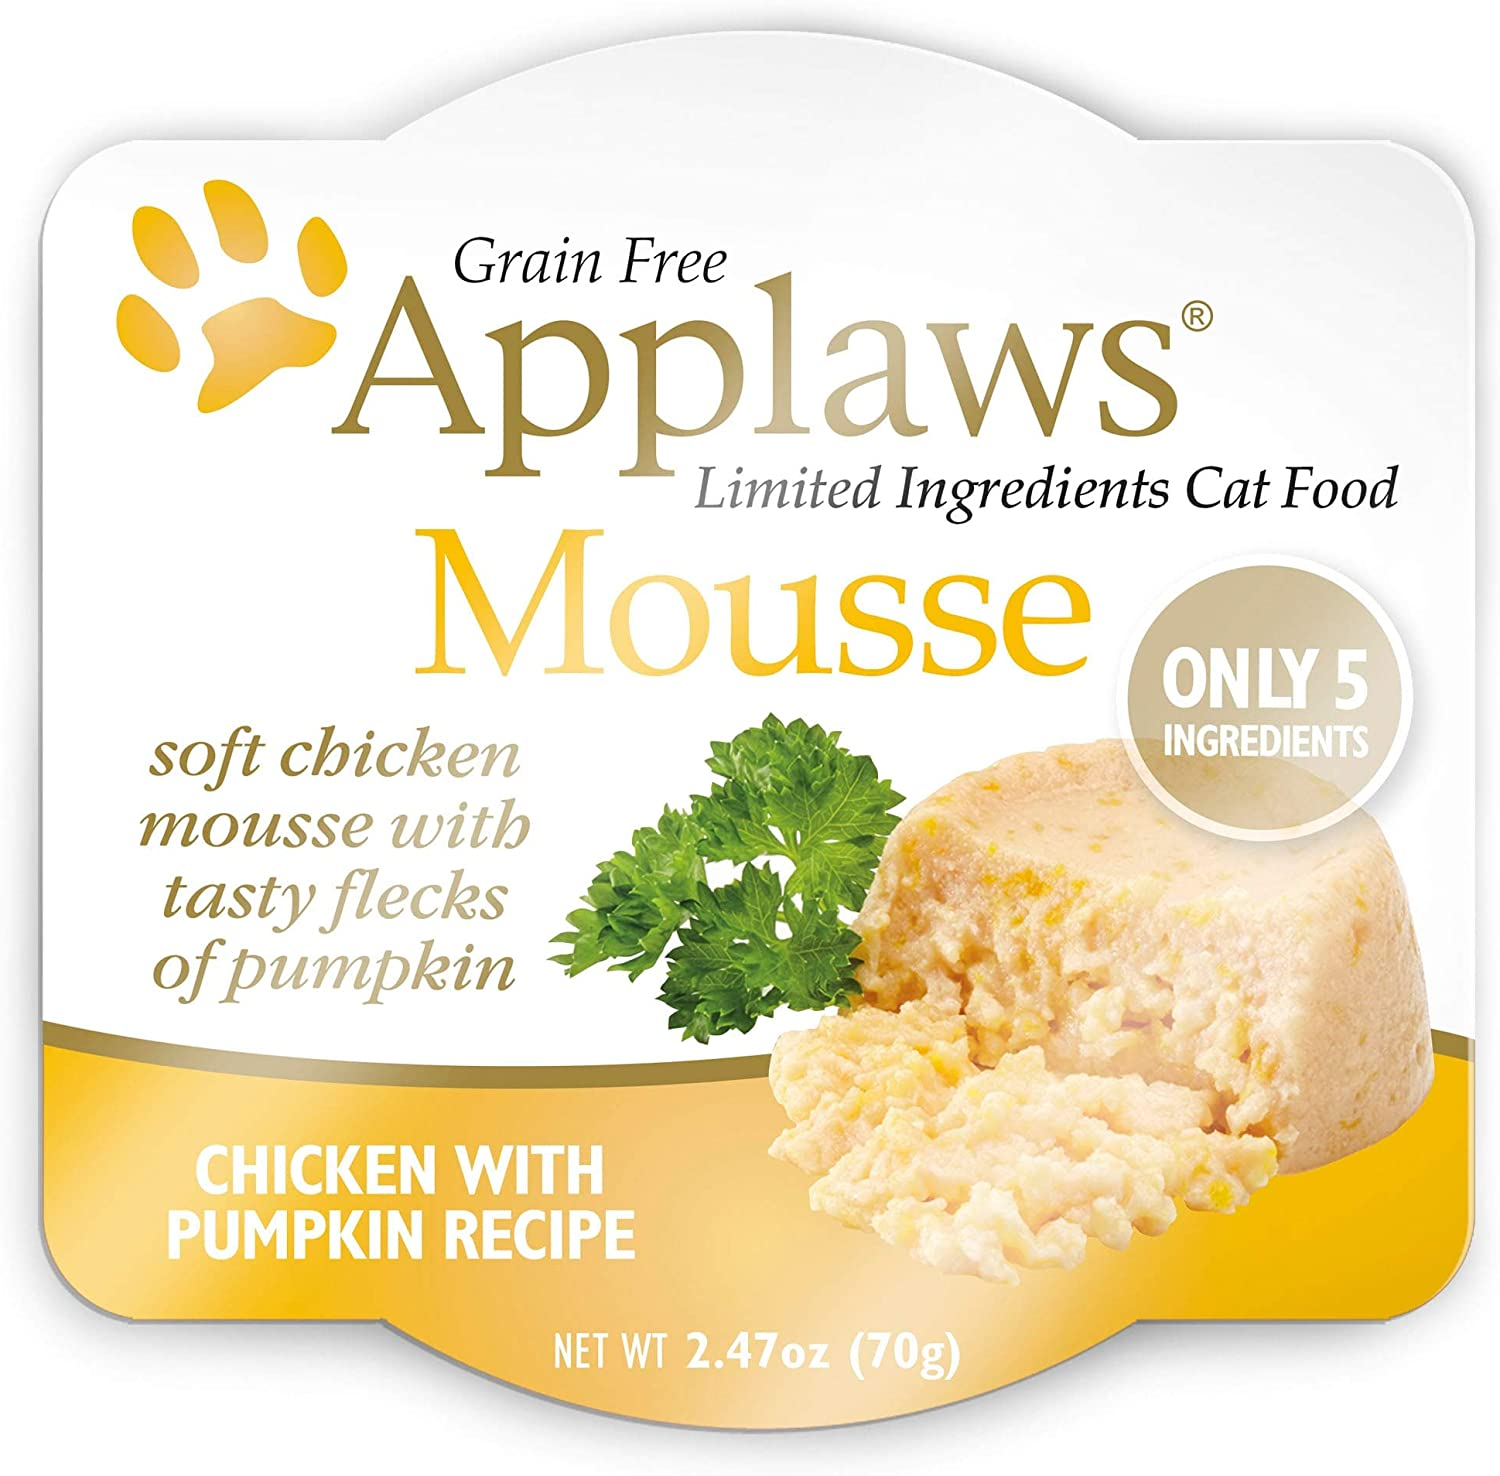 Applaws Mousse Wet Cat Food, Grain Free, Only 5 Ingredients, 2.5oz. (12 Pack)